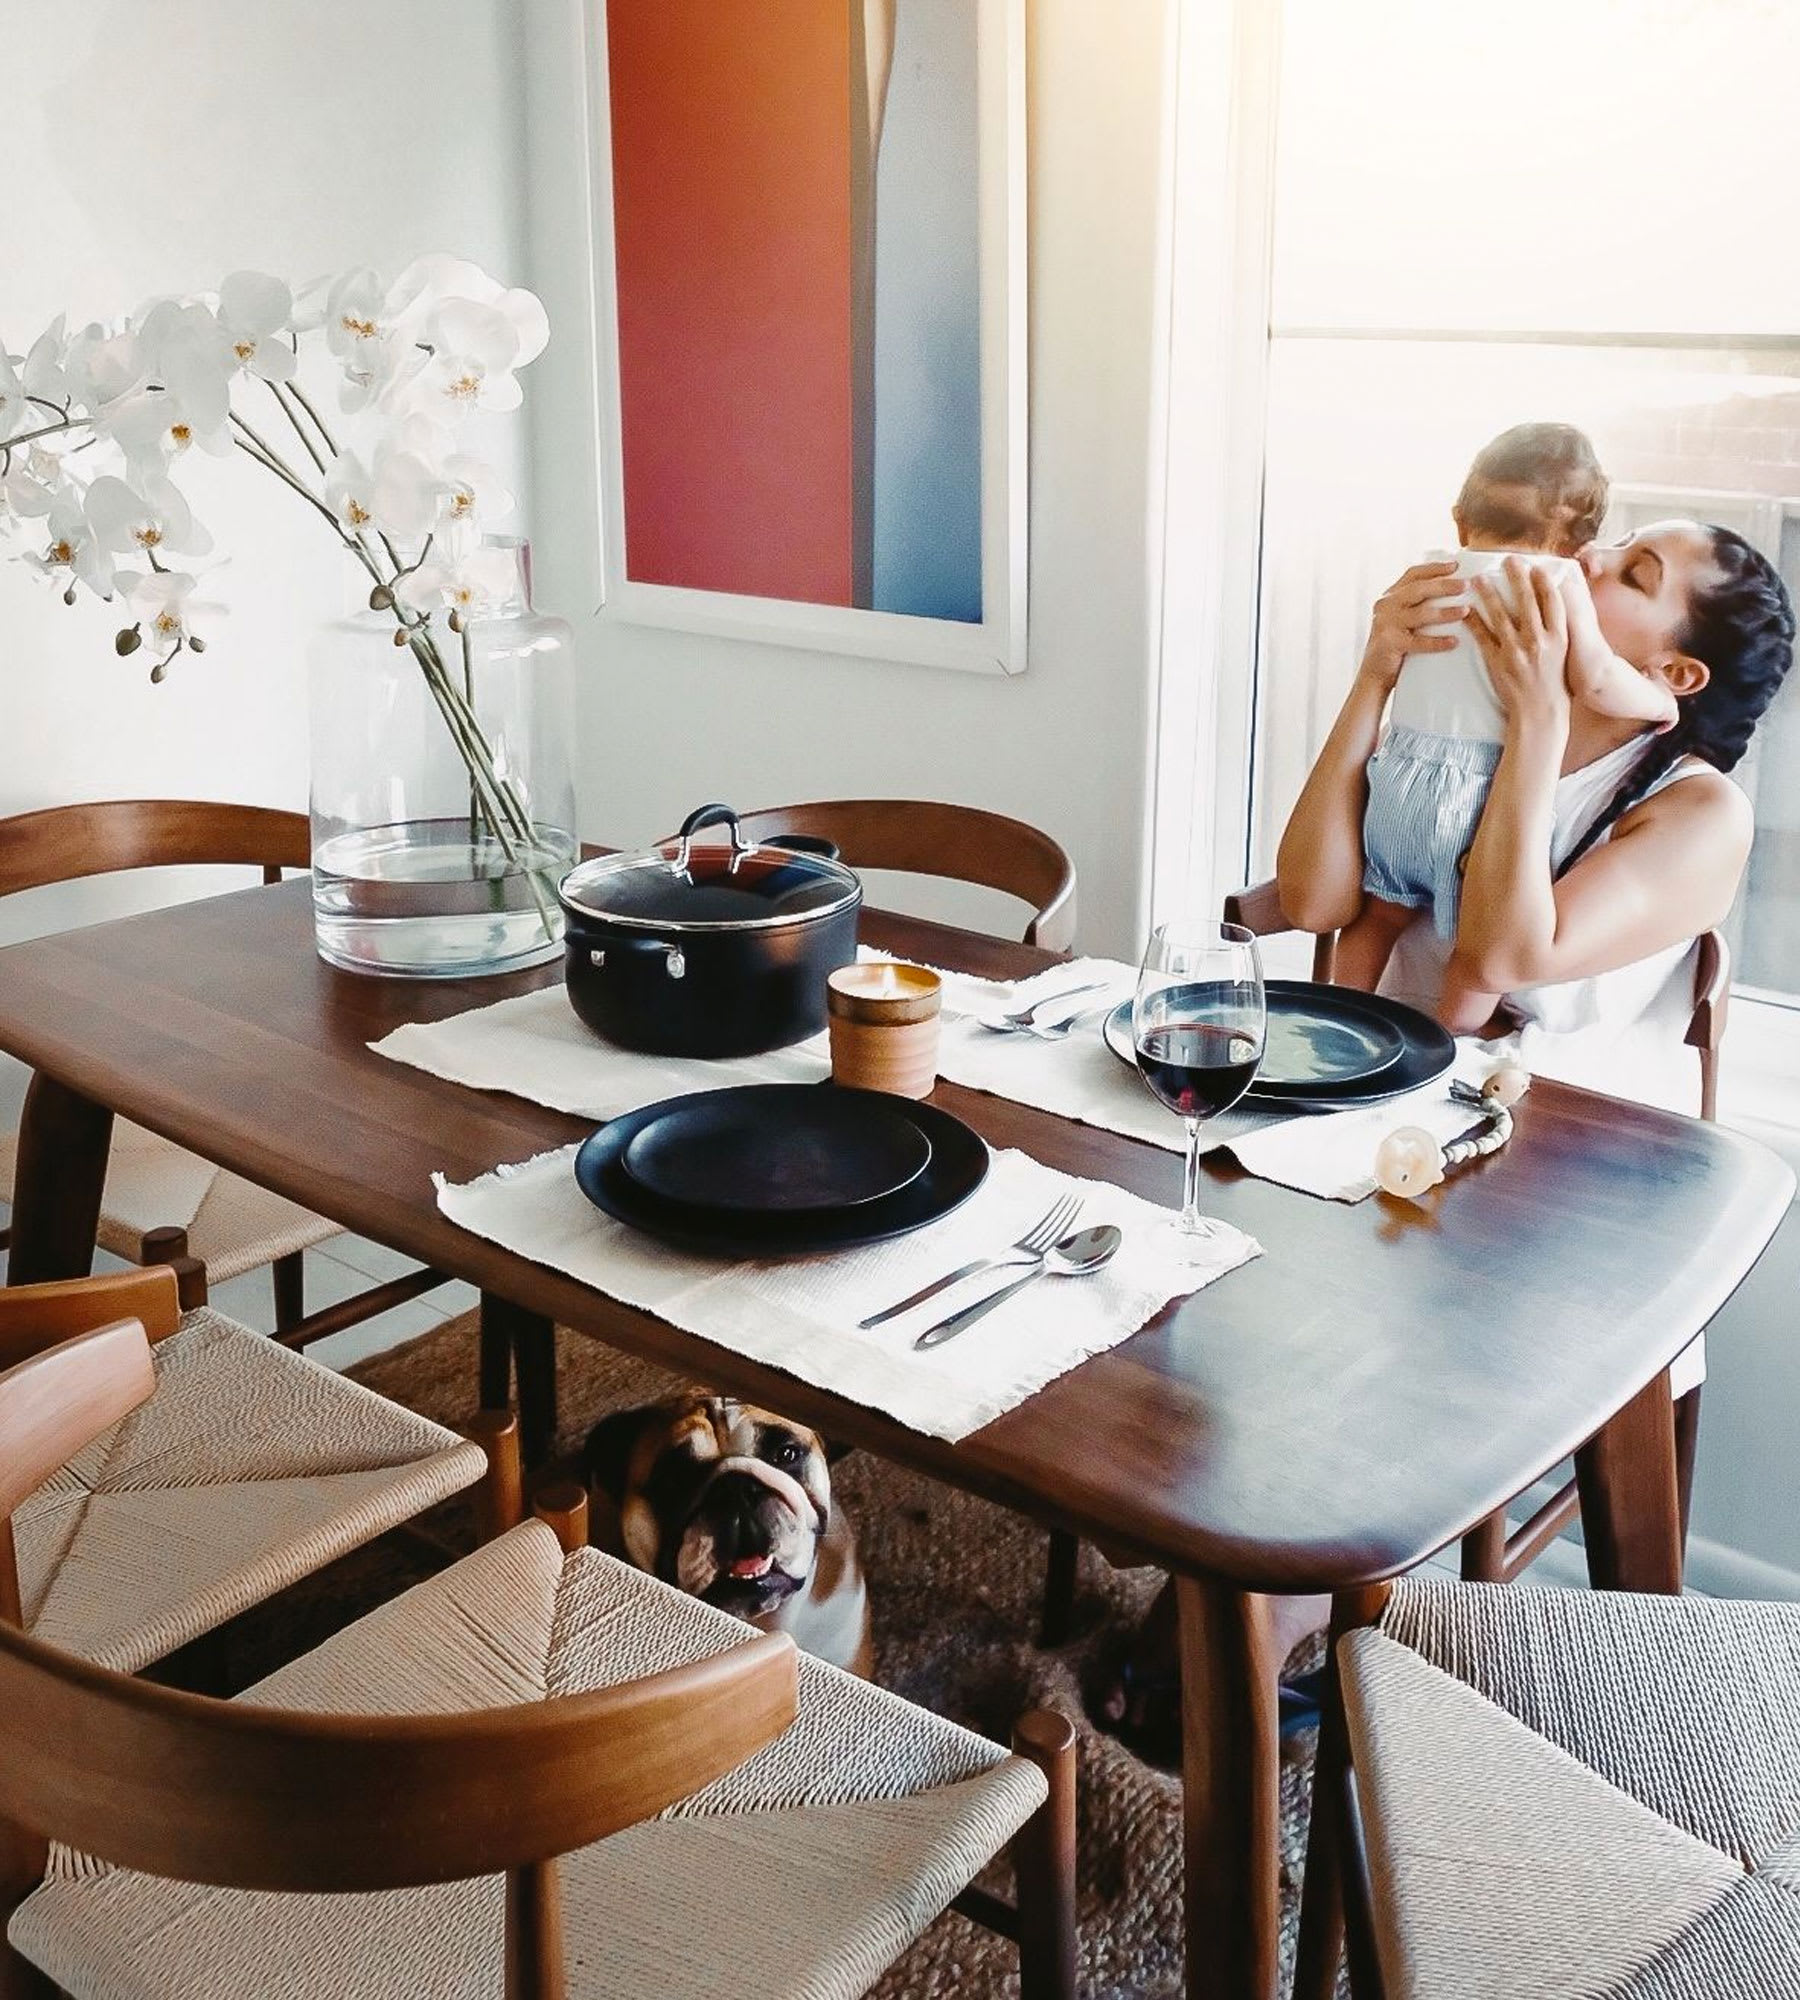 mid-century modern dining table and chairs in modern living room